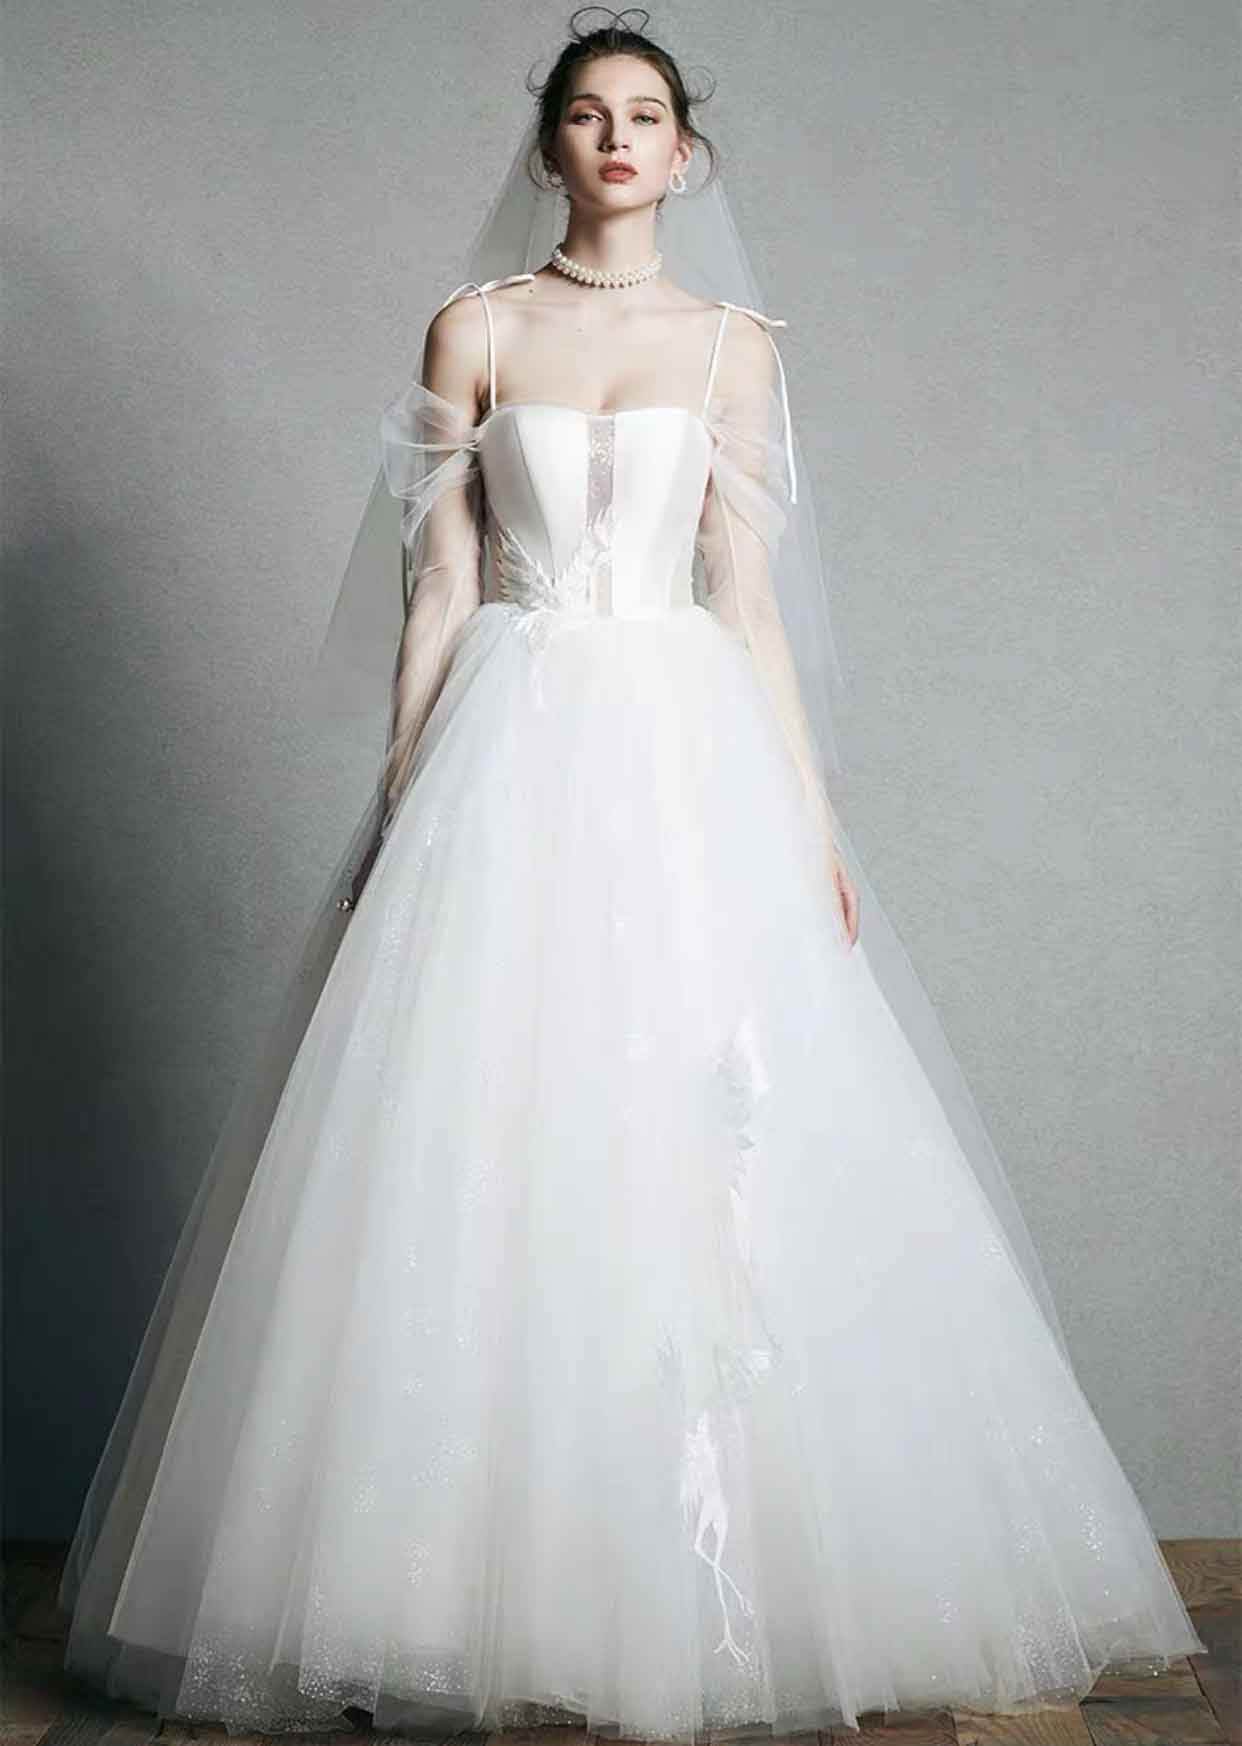 [RENT OR BUY] Custom Made Corset Bodice Wedding Dress with Phoenix Lace Applique and Tulle Sleeve